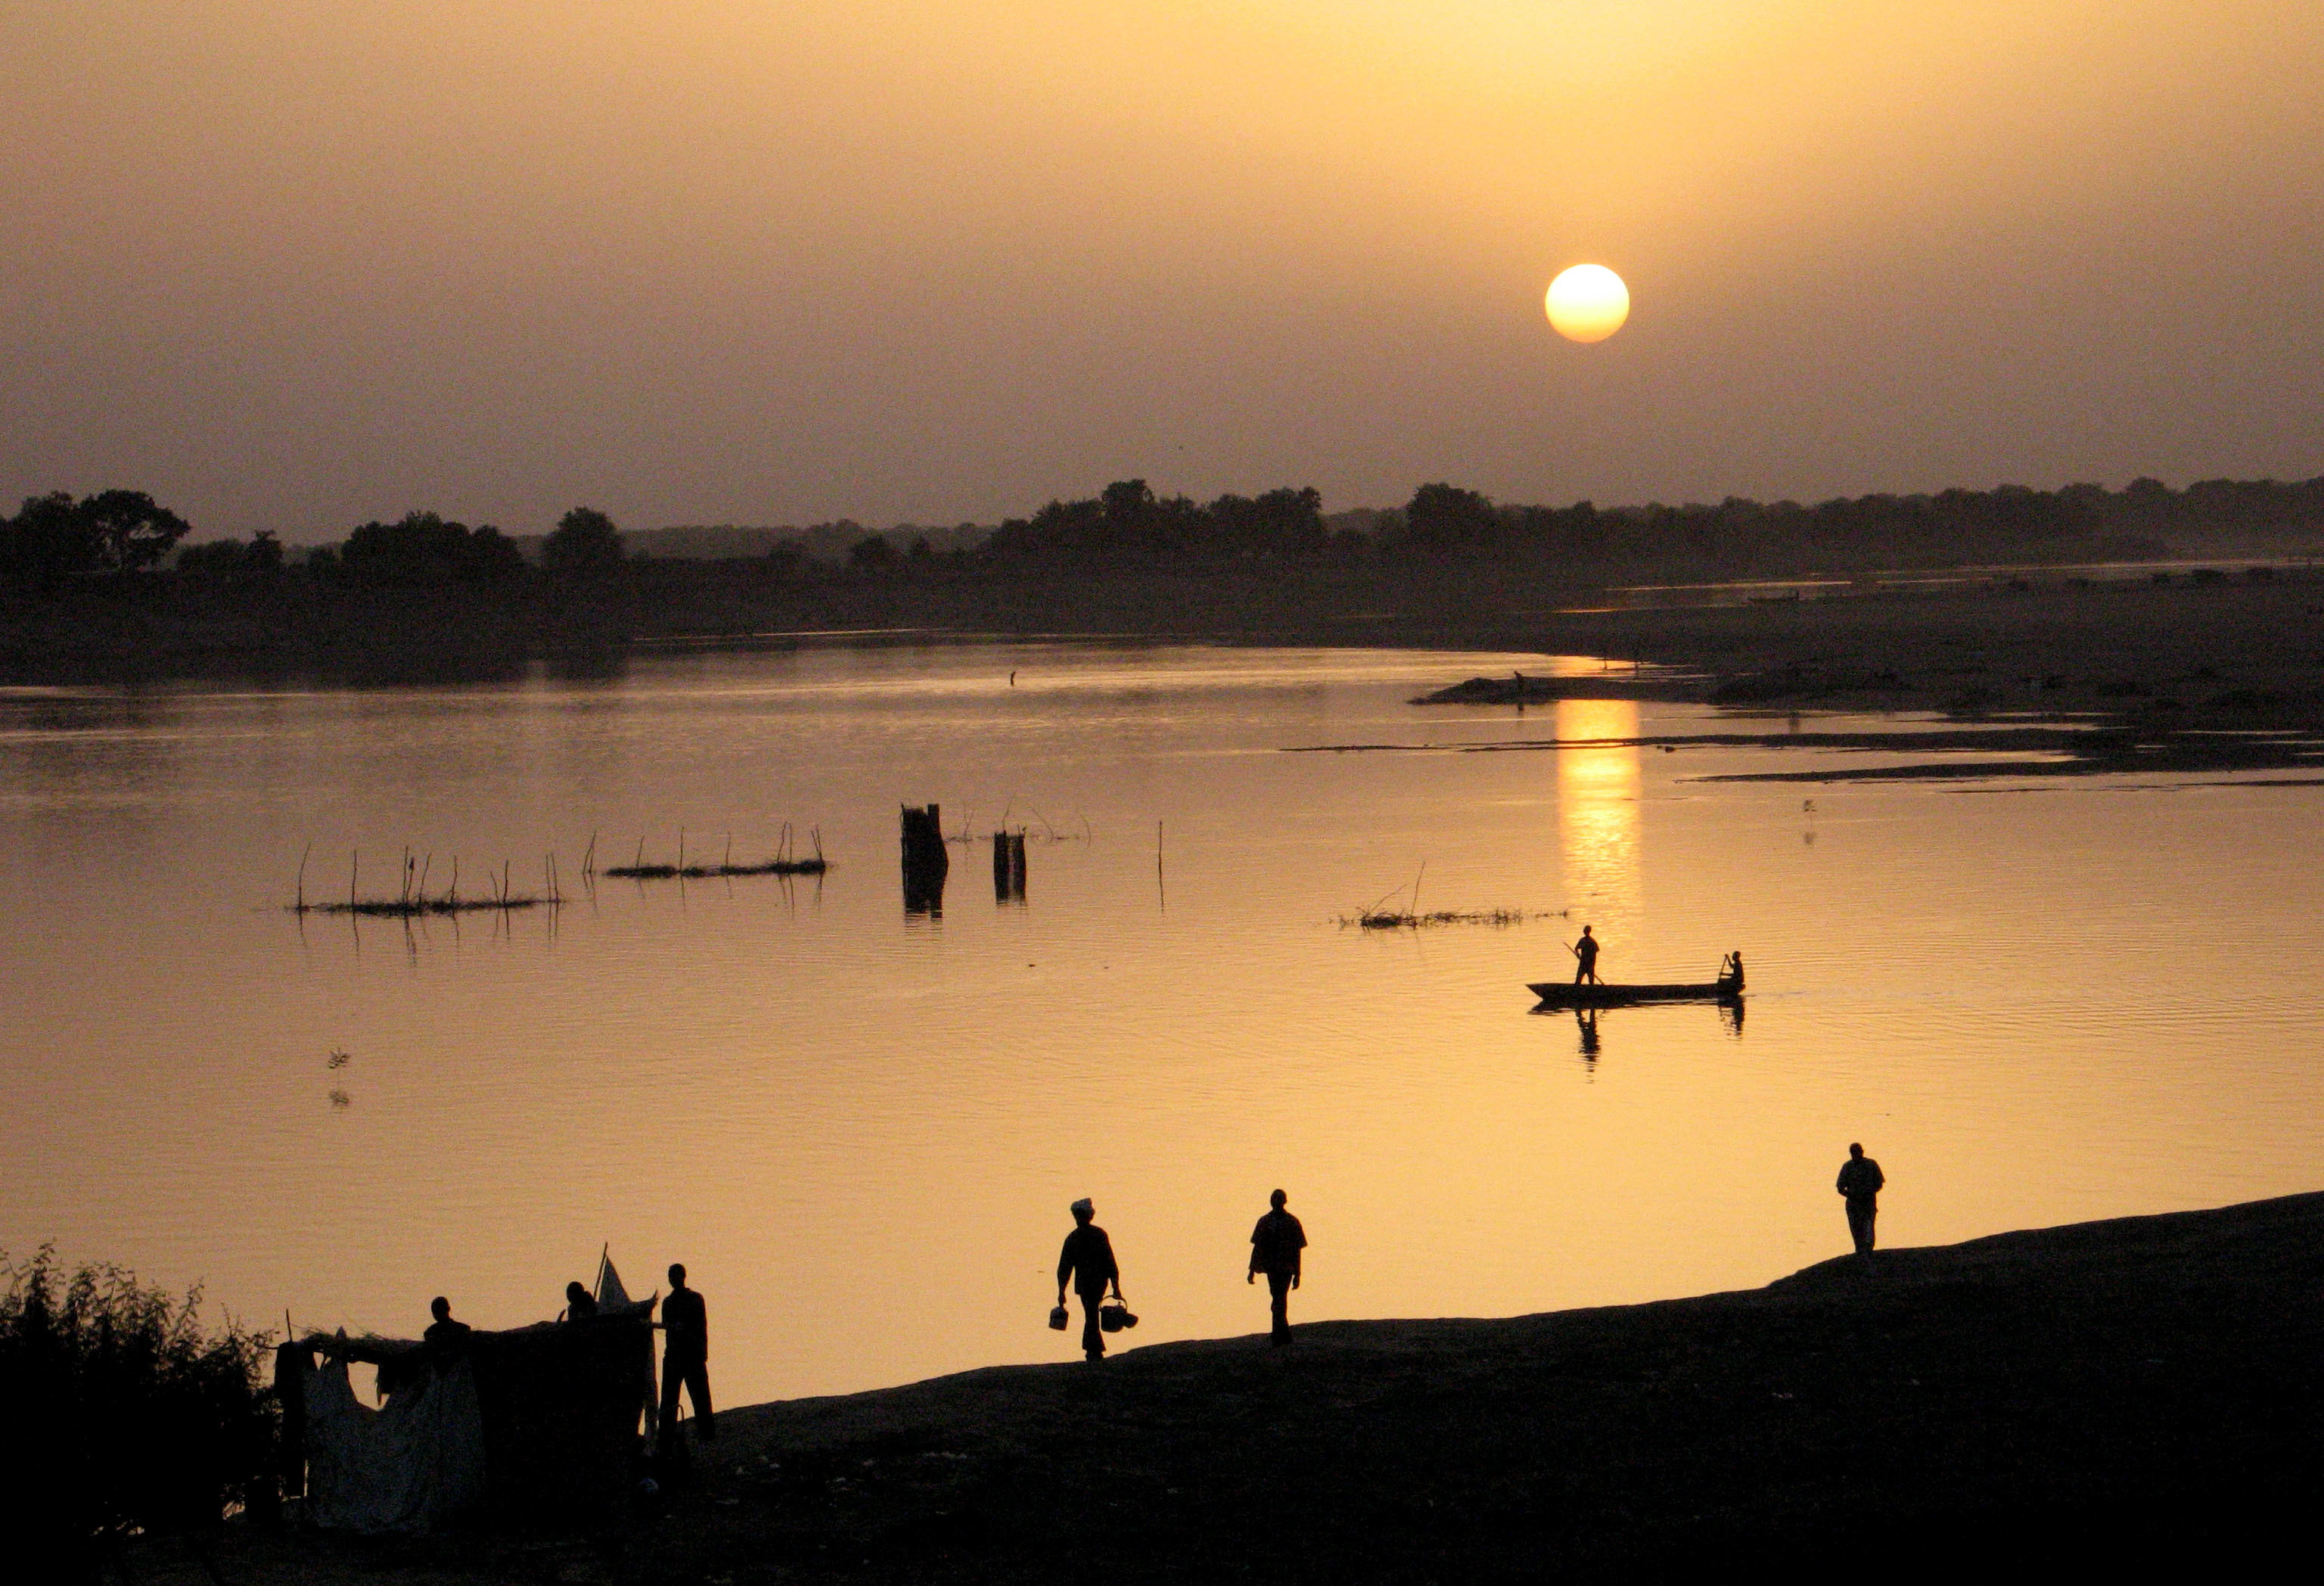 Fishermen return home at sunset in Chad's capital N'djamena April 21, 2006. A five-member team on an African union mission to Chad arrived in the country on Friday to probe President Idriss Deby's accusations that neighbour Sudan is backing rebels bent on ending his nearly 16-year rule. Picture taken April 21, 2006. REUTERS/David Mwangi - GF1DSLDYBNAA